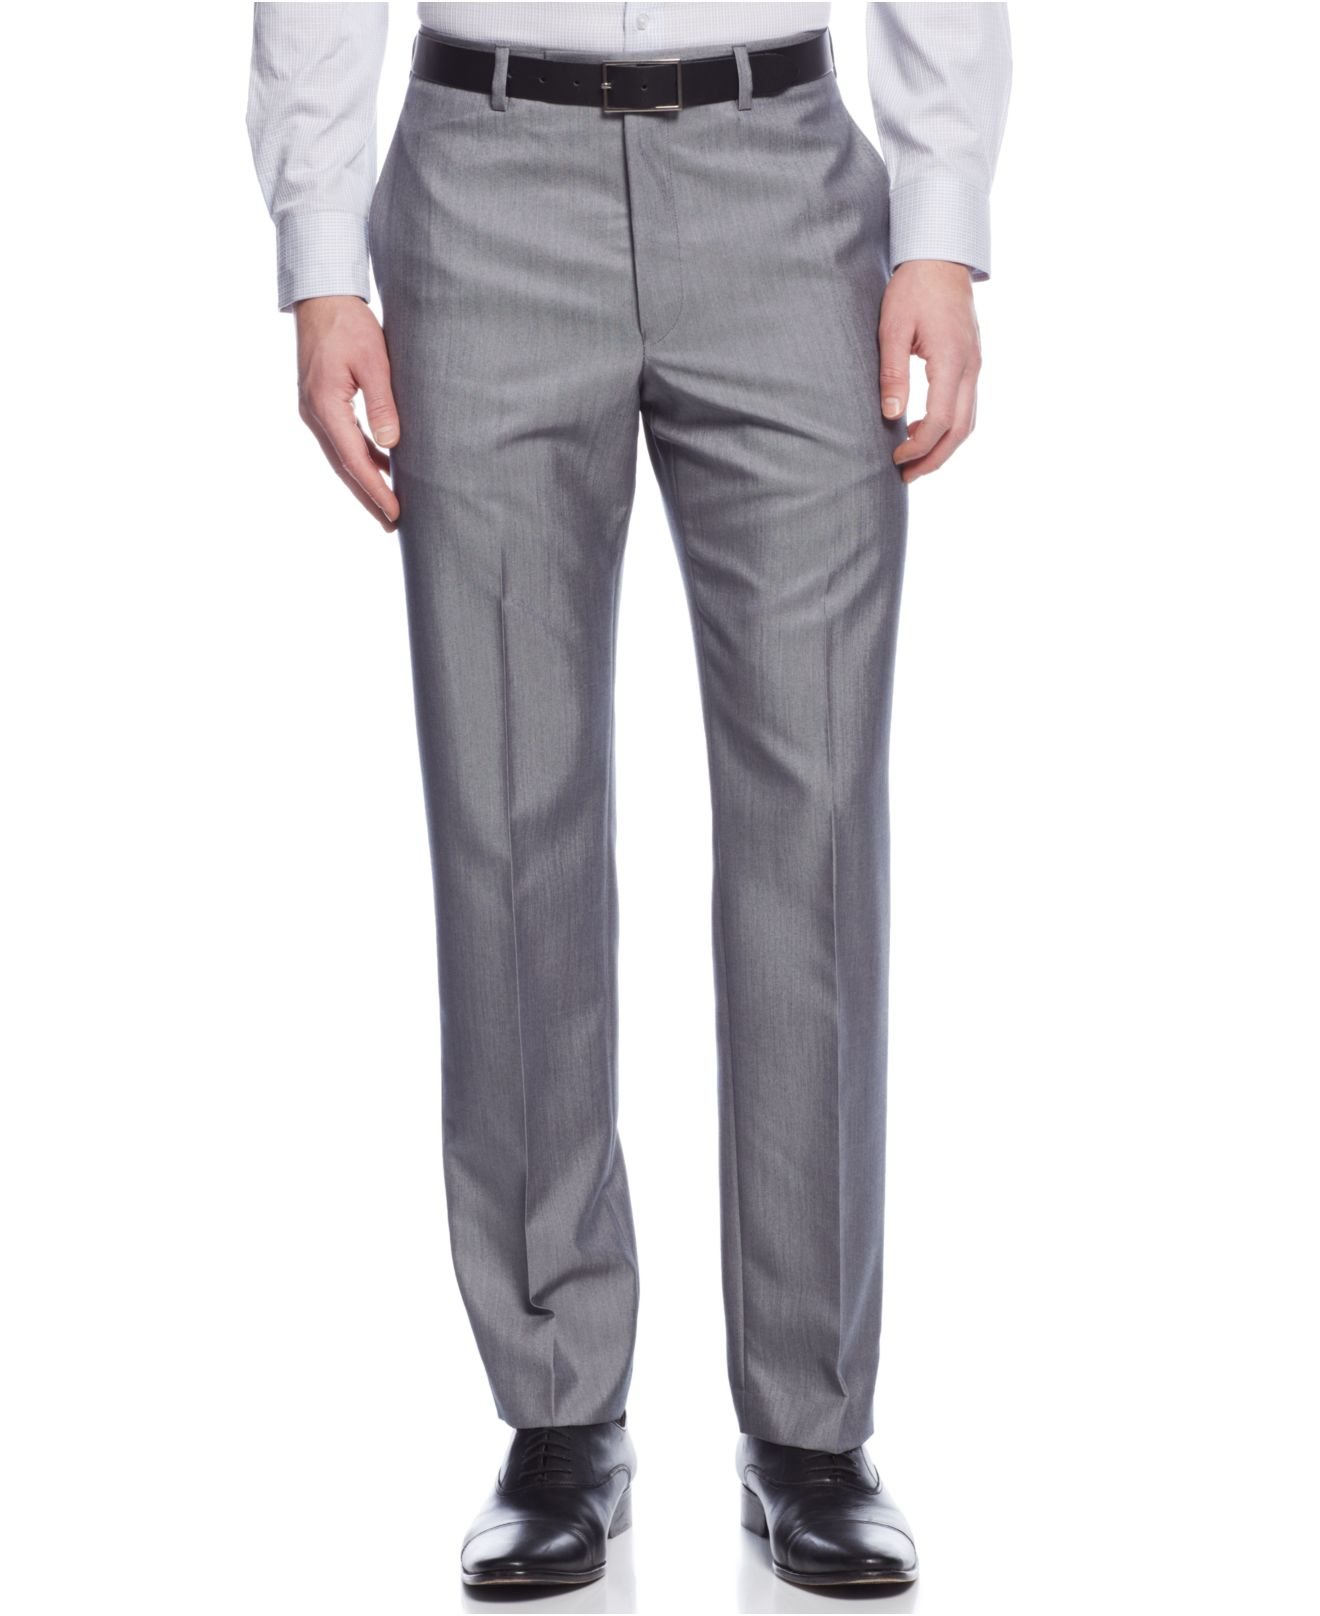 Shop for Men's Clearance Dress Pants & Slacks at gusajigadexe.cf Browse clearance trousers for men from Jos. A Bank. FREE shipping on orders over $ Tailored Fit Dress Shirts Traditional Fit Dress Shirts Tailored Fit Sportshirts Traditional Fit Sportshirts COLLECTION. Traveler Dress Shirts Reserve Dress .